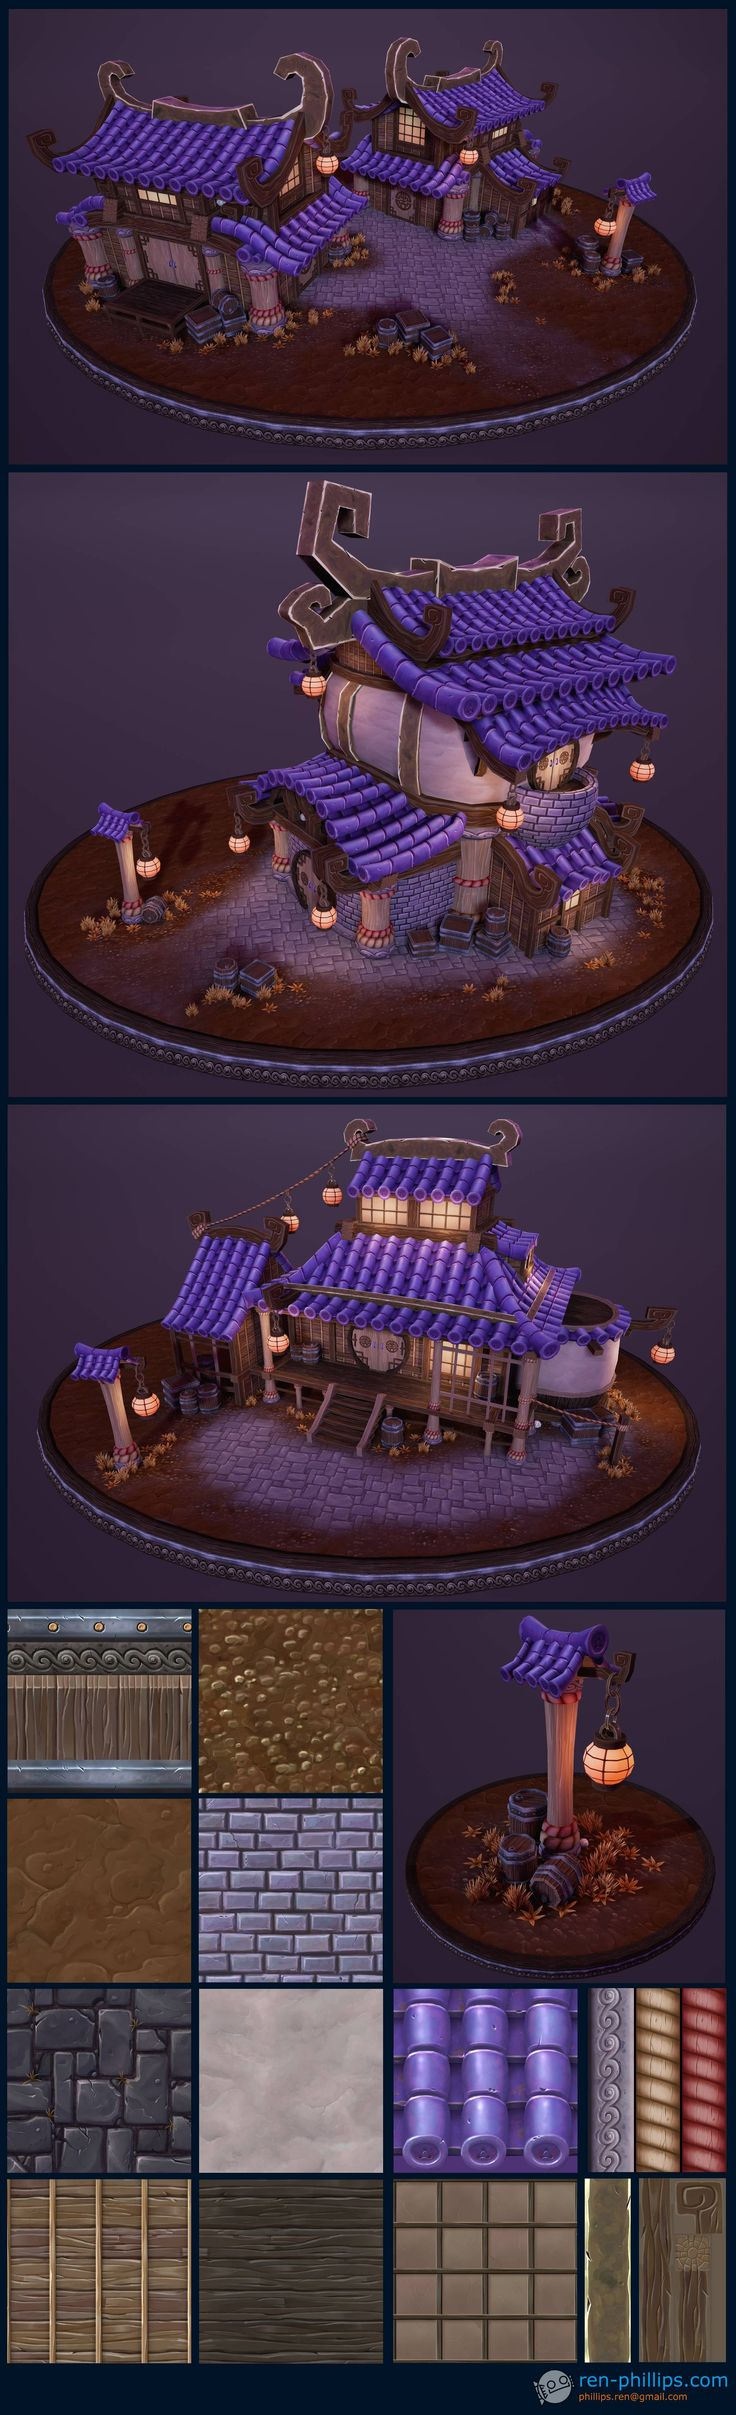 Show your hand painted stuff, pls! - Page 41 - Polycount Forum